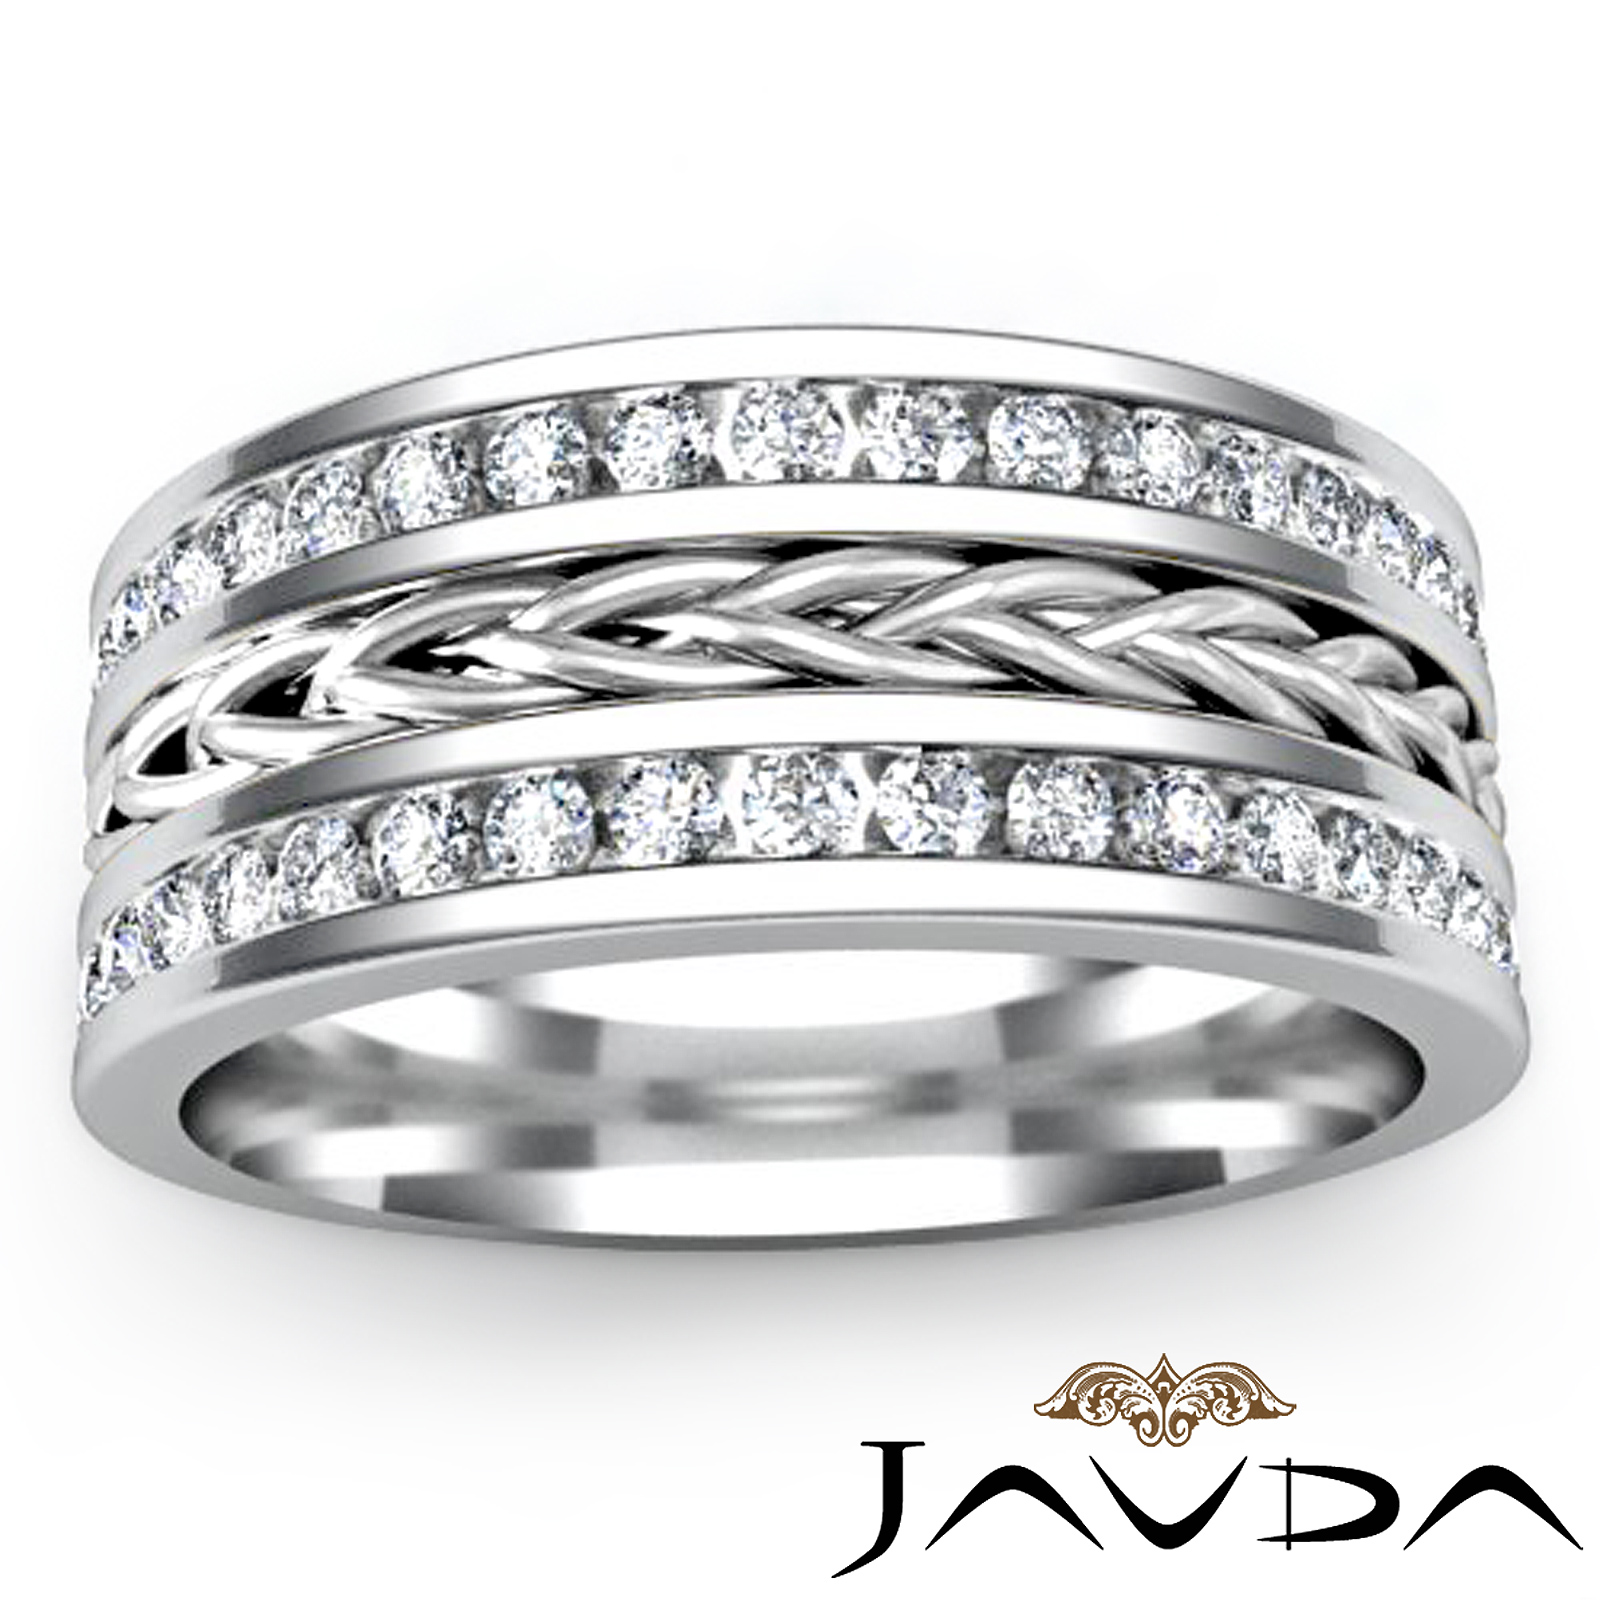 Rope Design Bands: Rope Design Eternity Mens Wedding Ring Pave Diamond 9.5mm